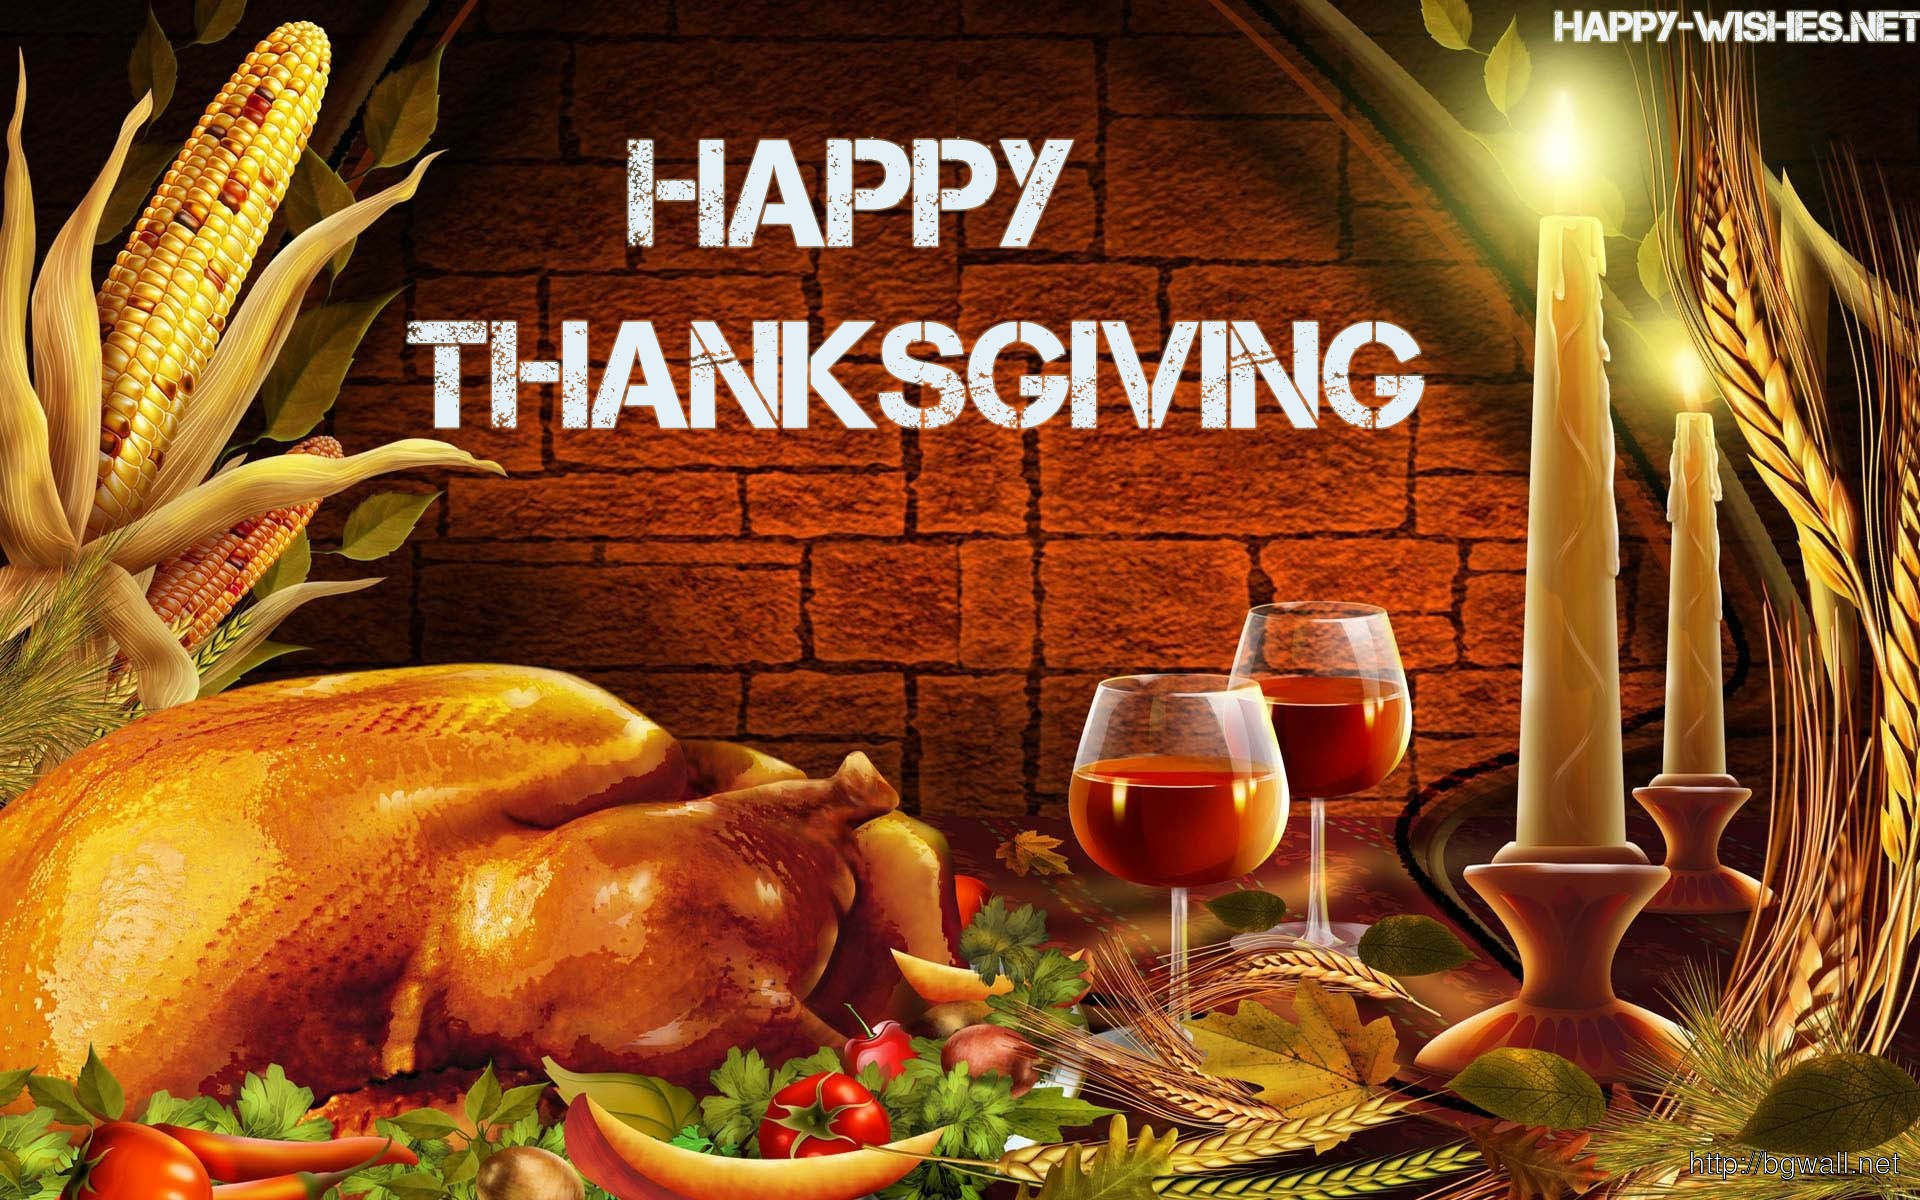 Image result for happy thanksgiving dinner